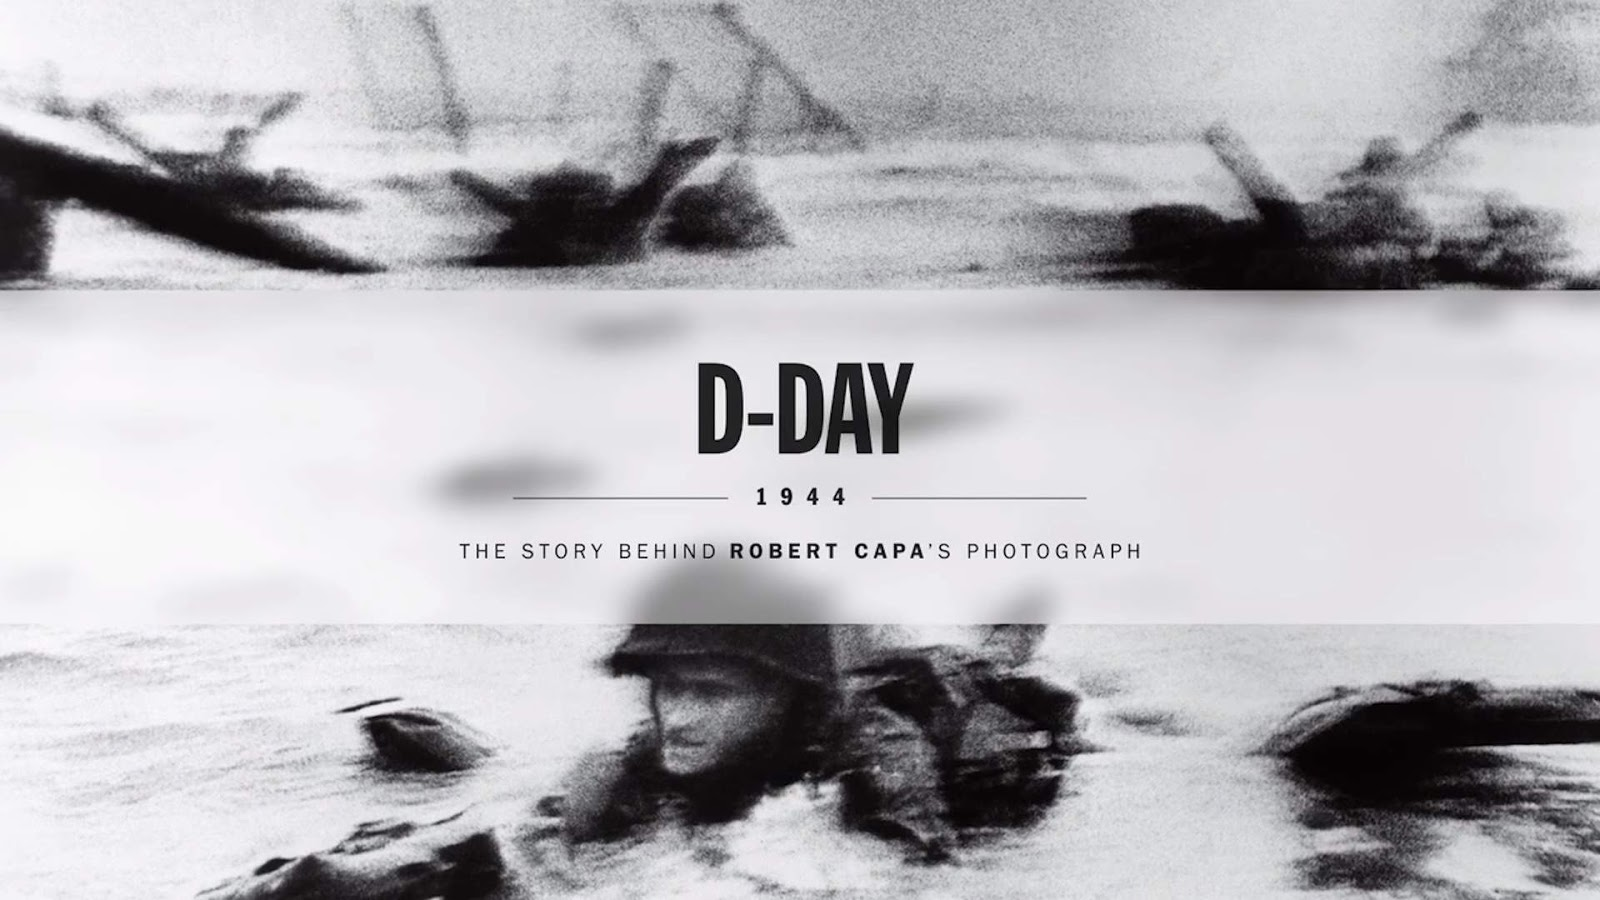 the role and influence of photographer robert capa in history